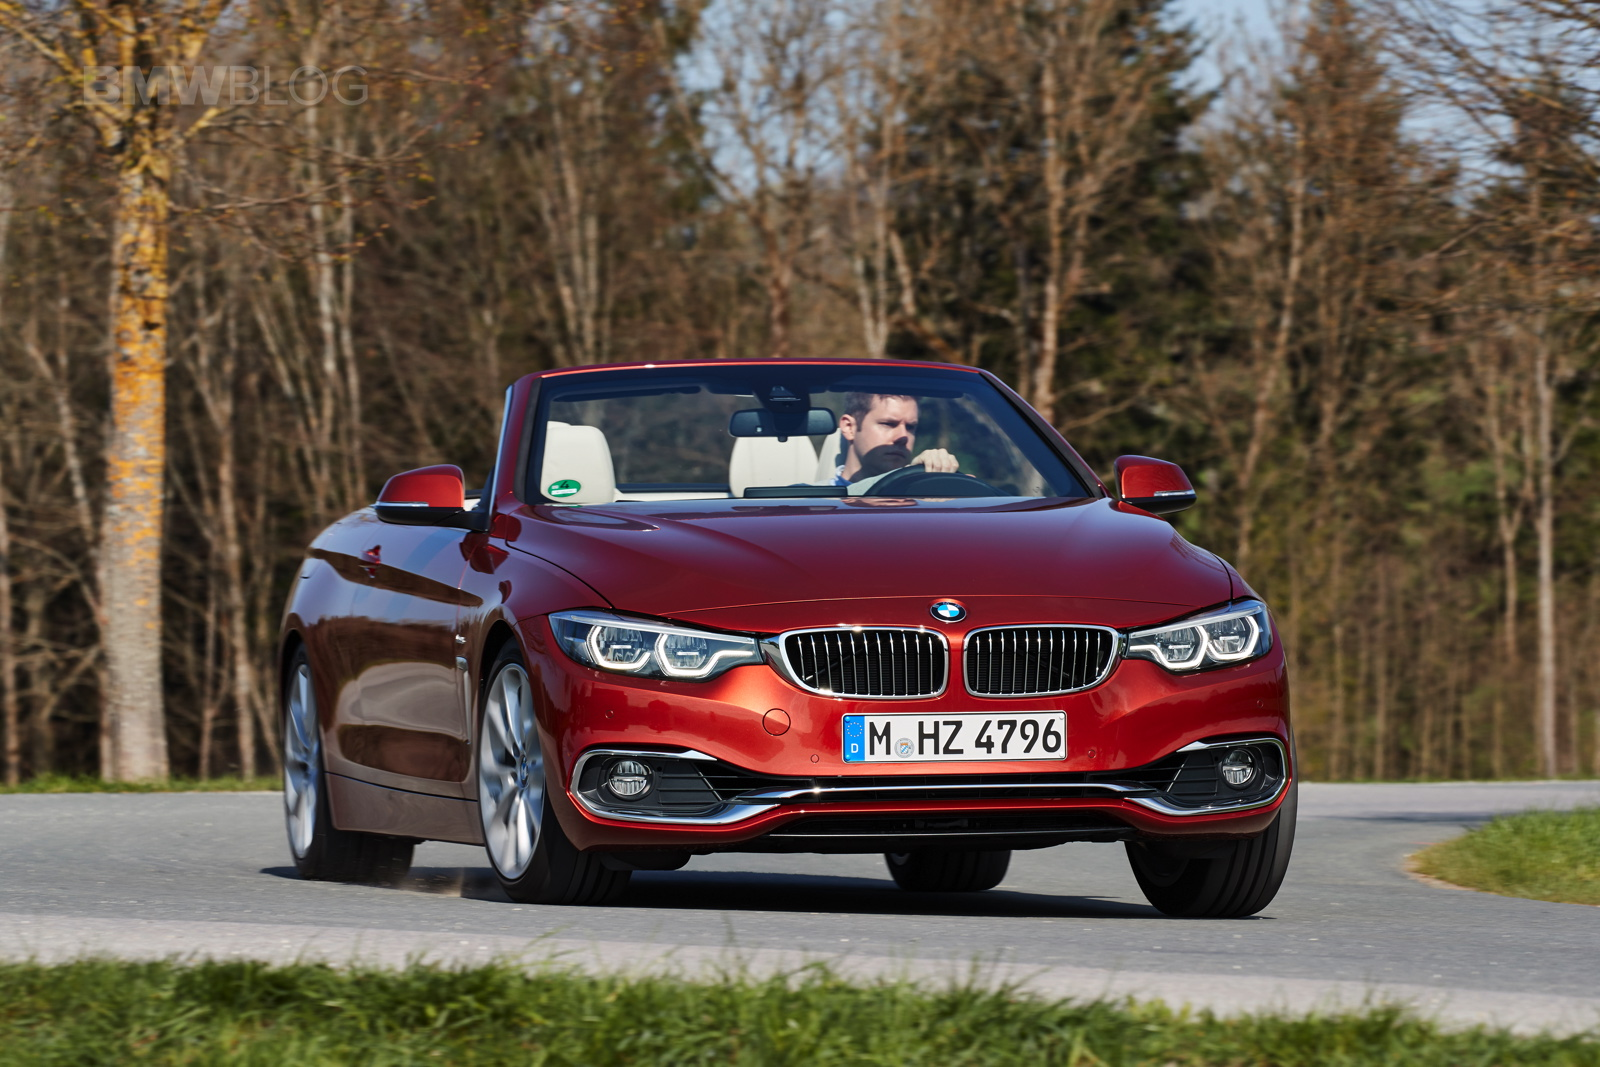 The 430i Convertible Is Ed By A Remarkable 2 0 Liter In Line Turbocharged Four Cylinder Which Puts Out 248 Hp And 258 Lb Ft Of Torque Paired